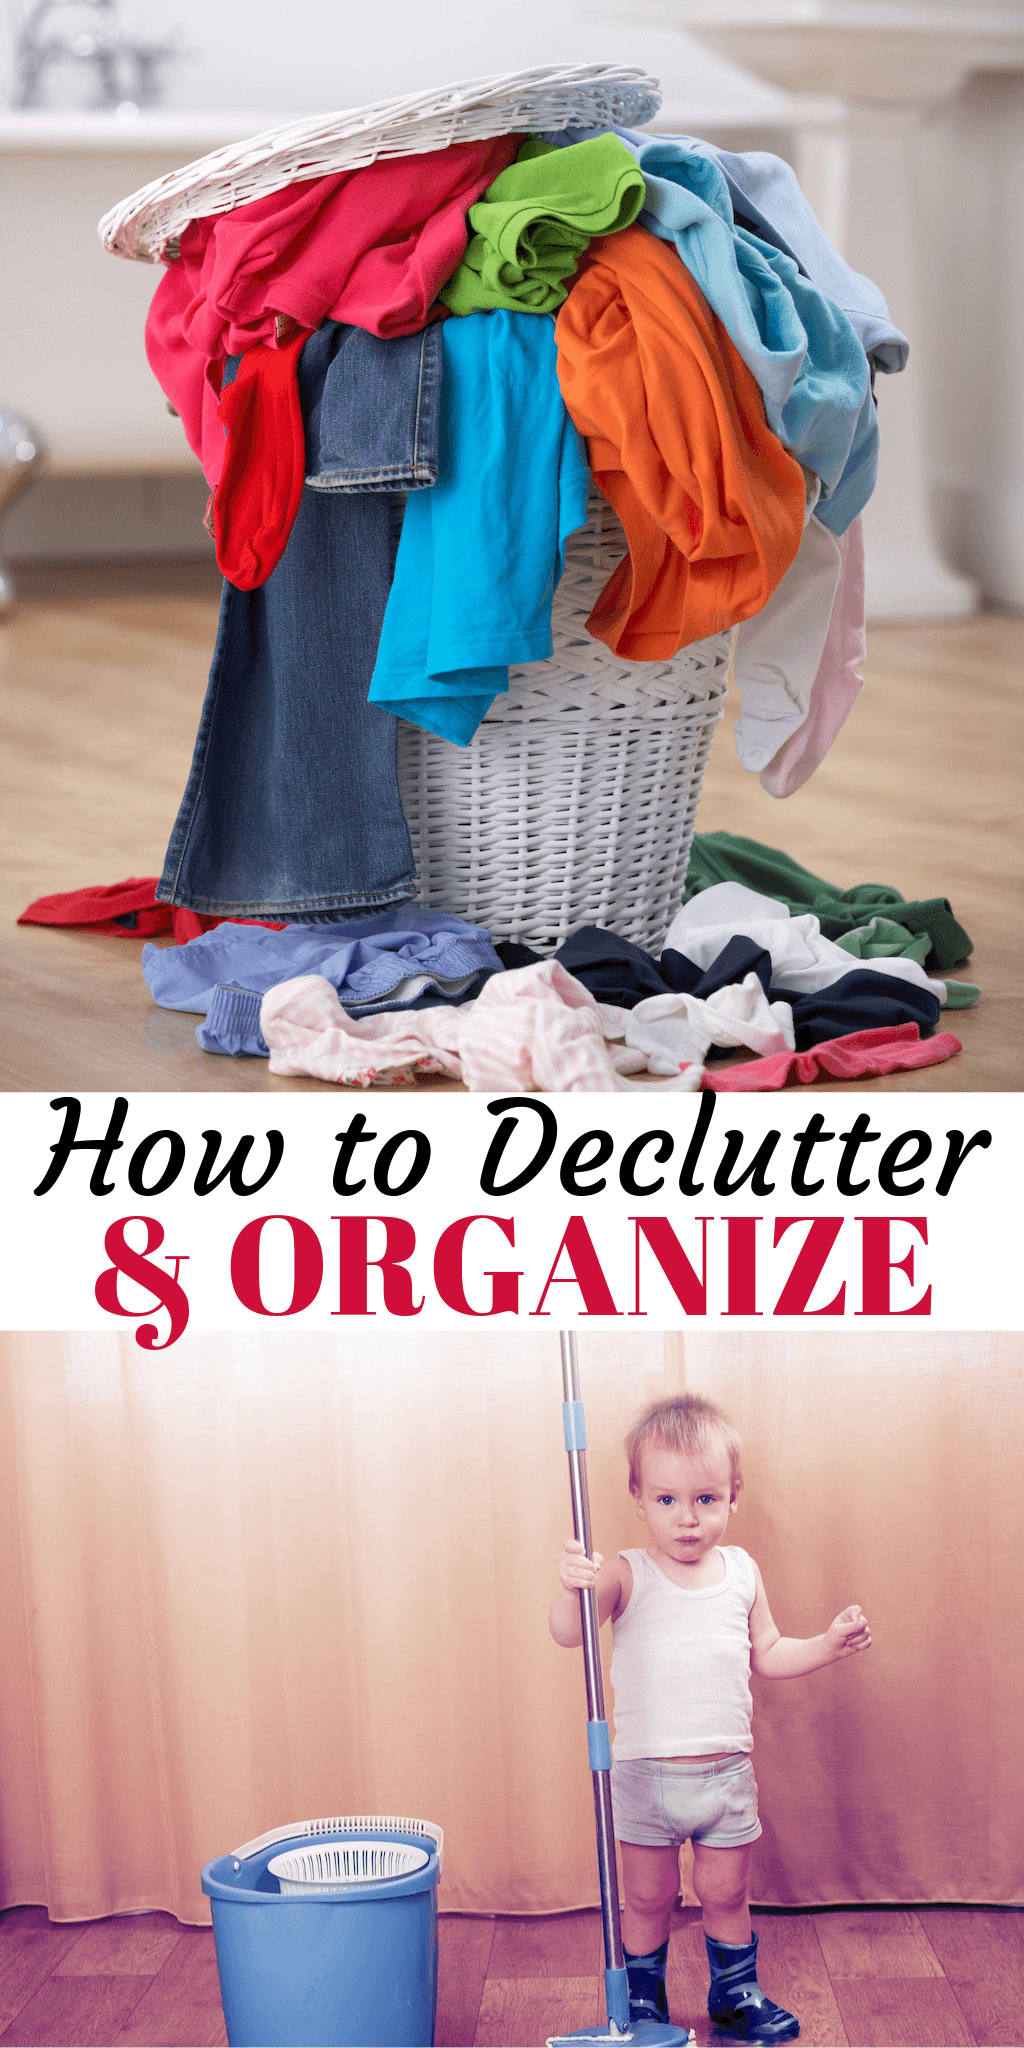 If you've decided to get a handle on your clutter, this article will offer some help with tips on how to de clutter and for maintaining your home afterward.